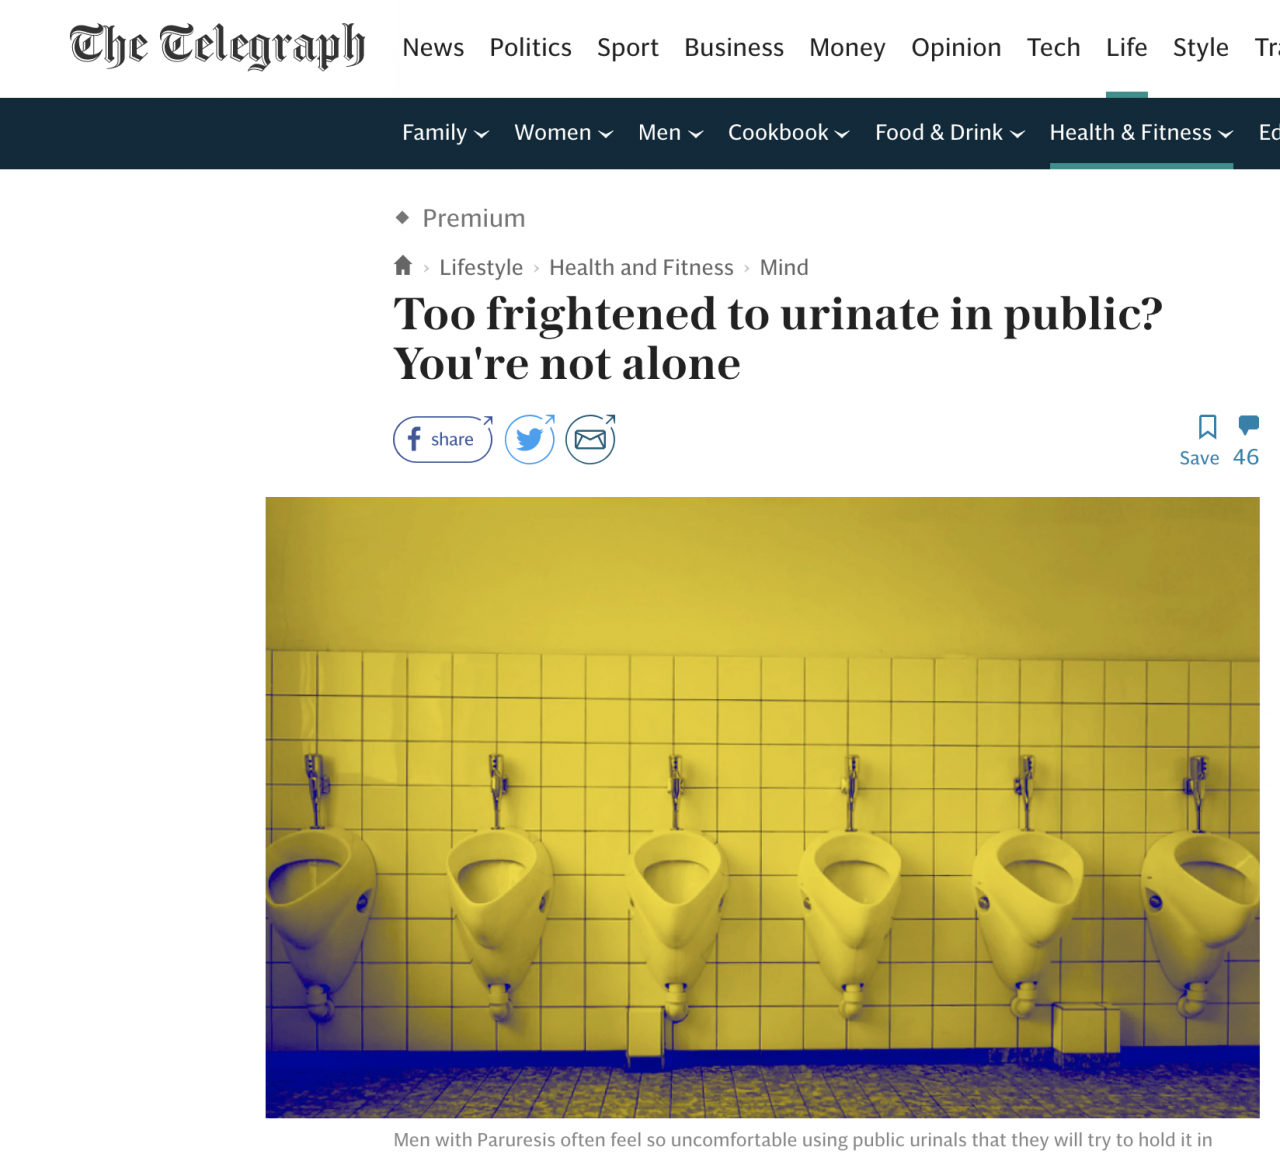 The Telegraph - Too frightened to urinate in public? You're not alone. October 2019